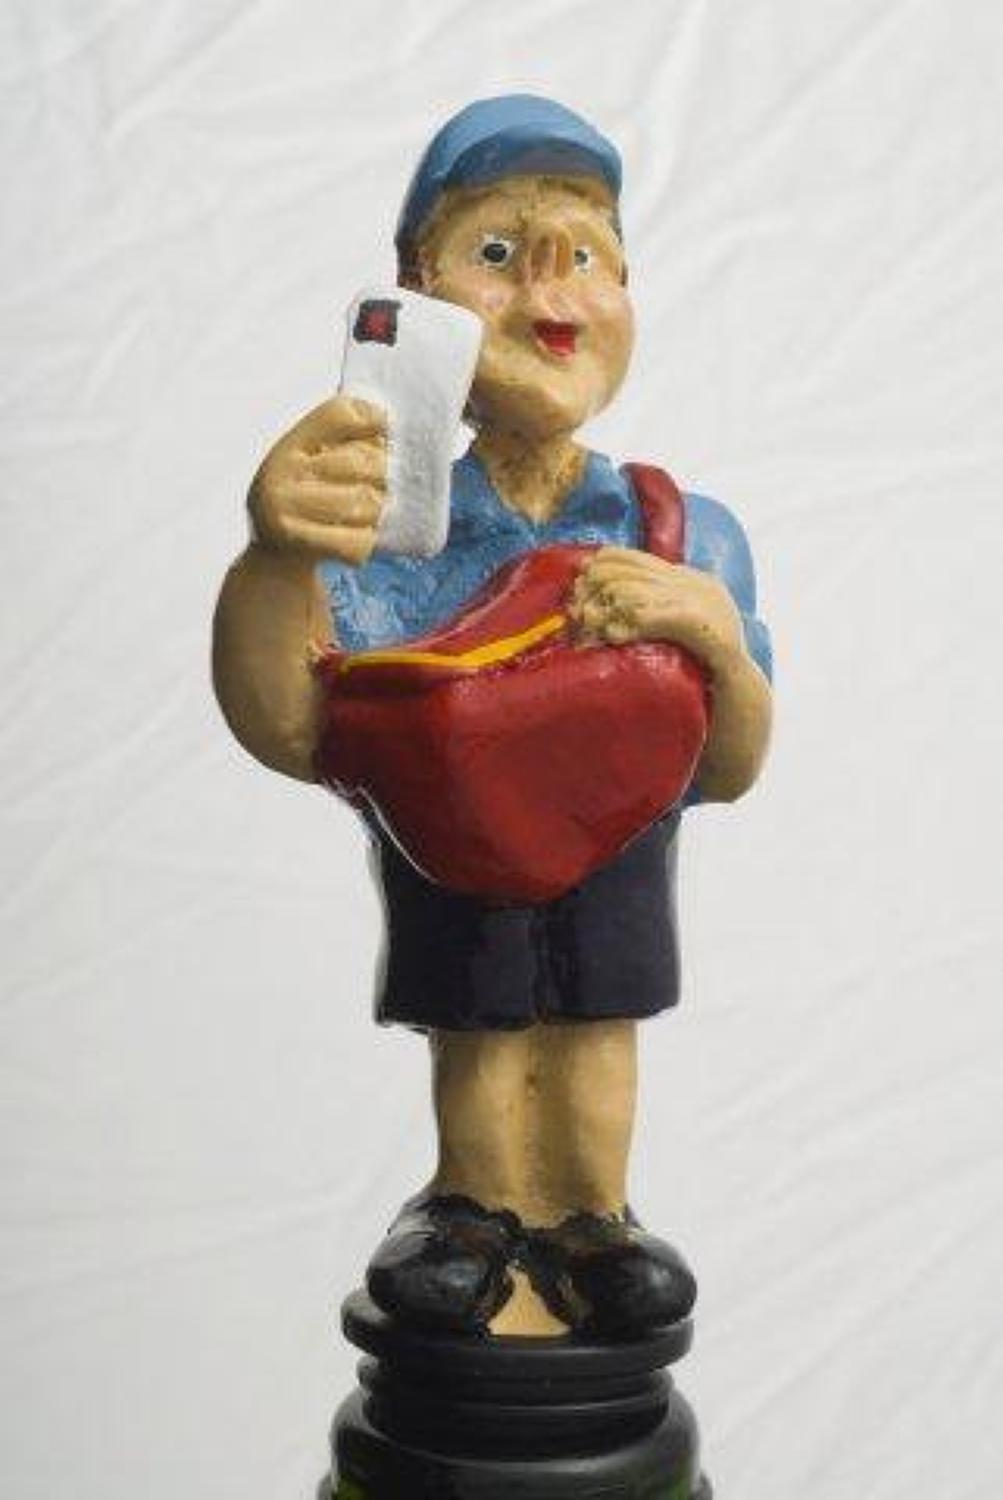 Postman bottle stopper